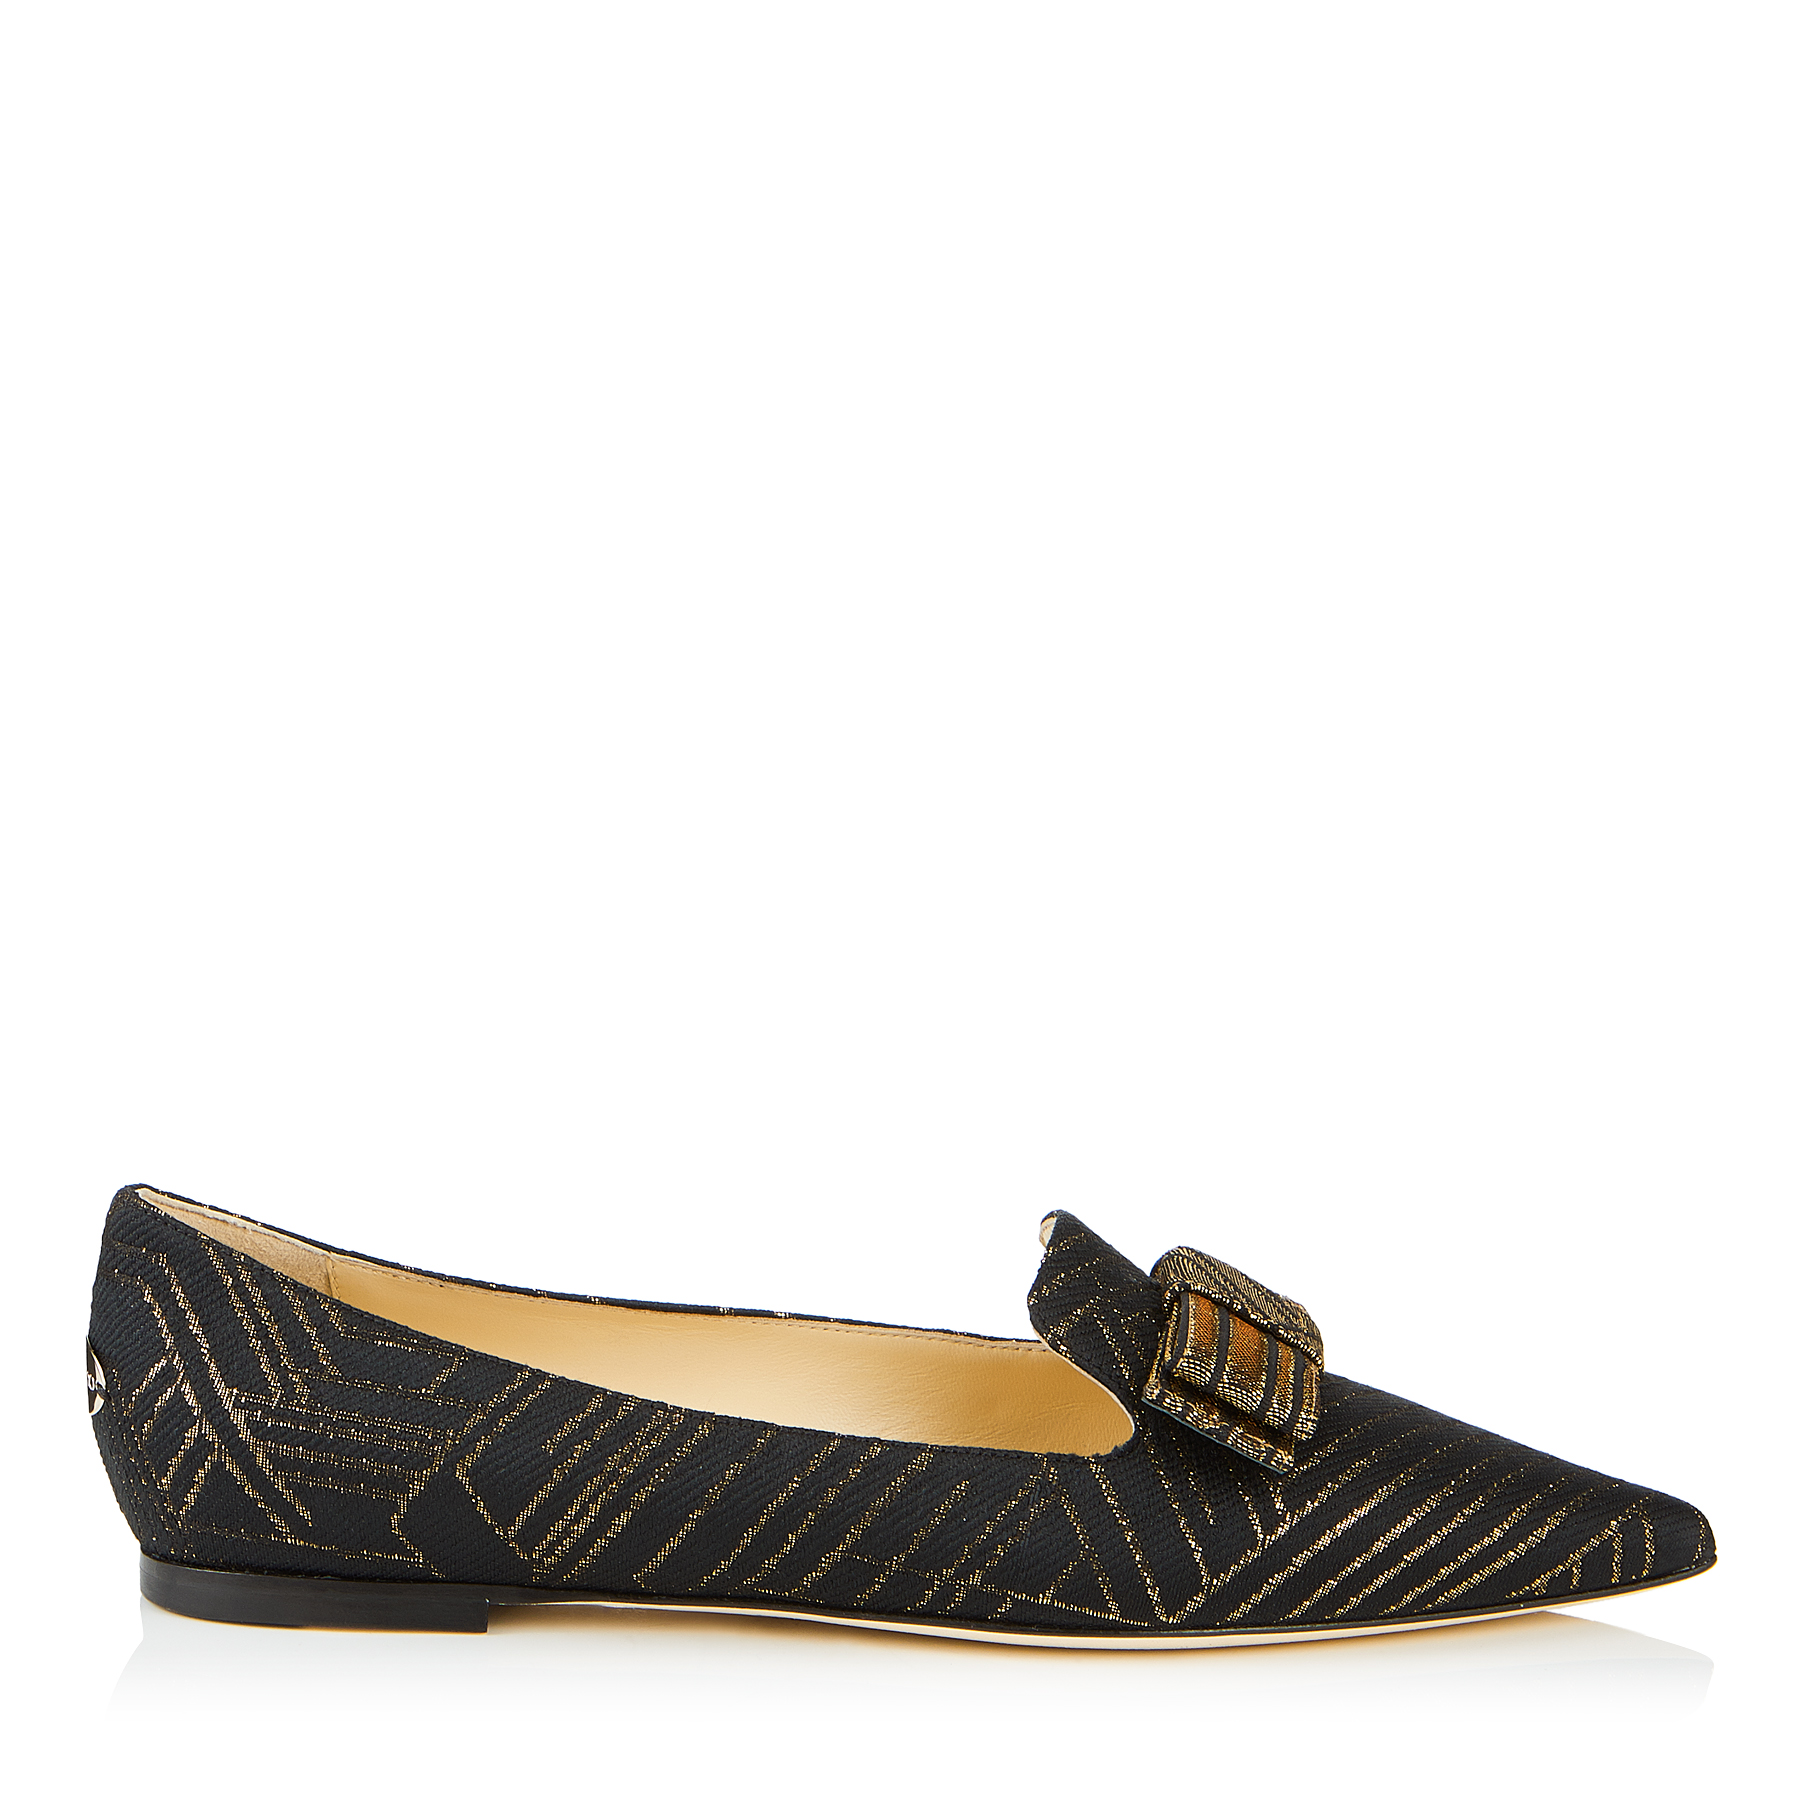 GALA Black and Gold Deco Graphic Fabric Pointy Toe Flats with Bow Detail